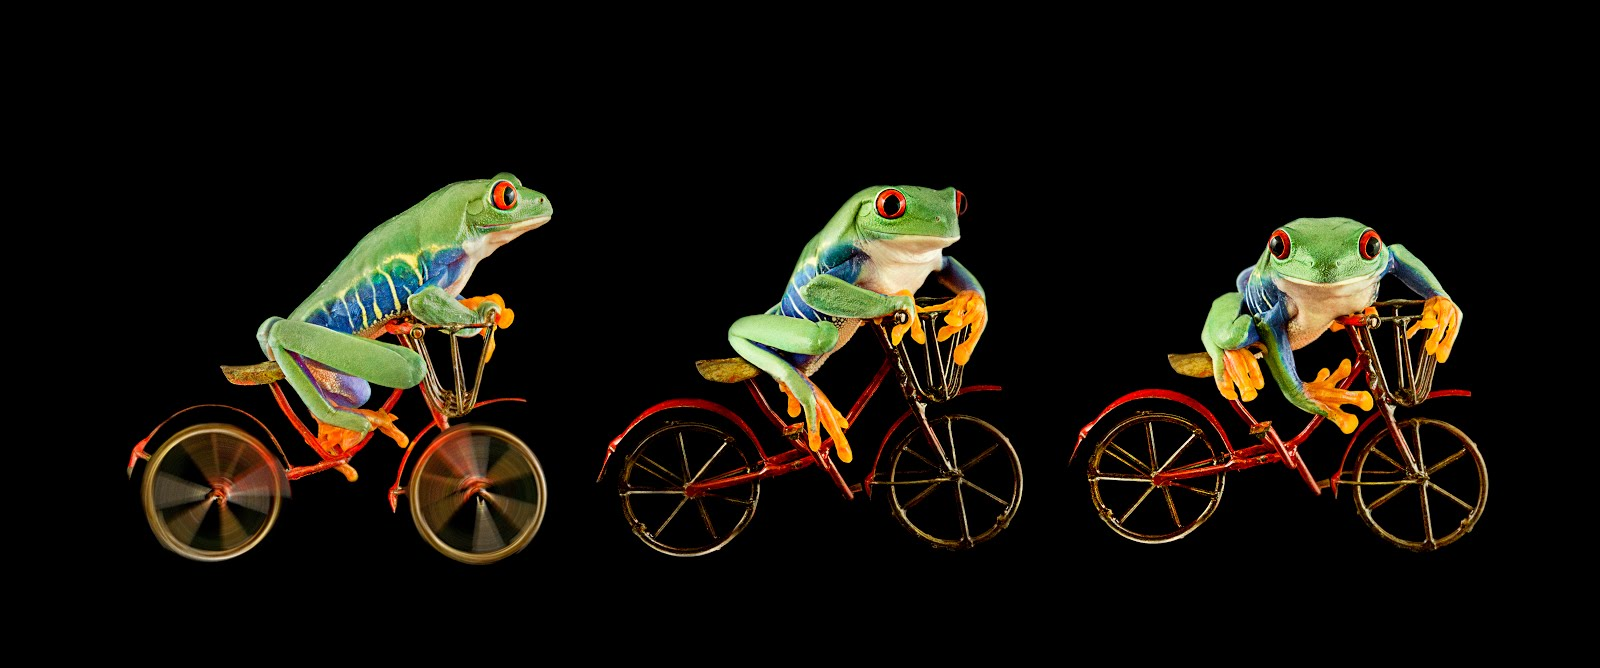 FrogScapes